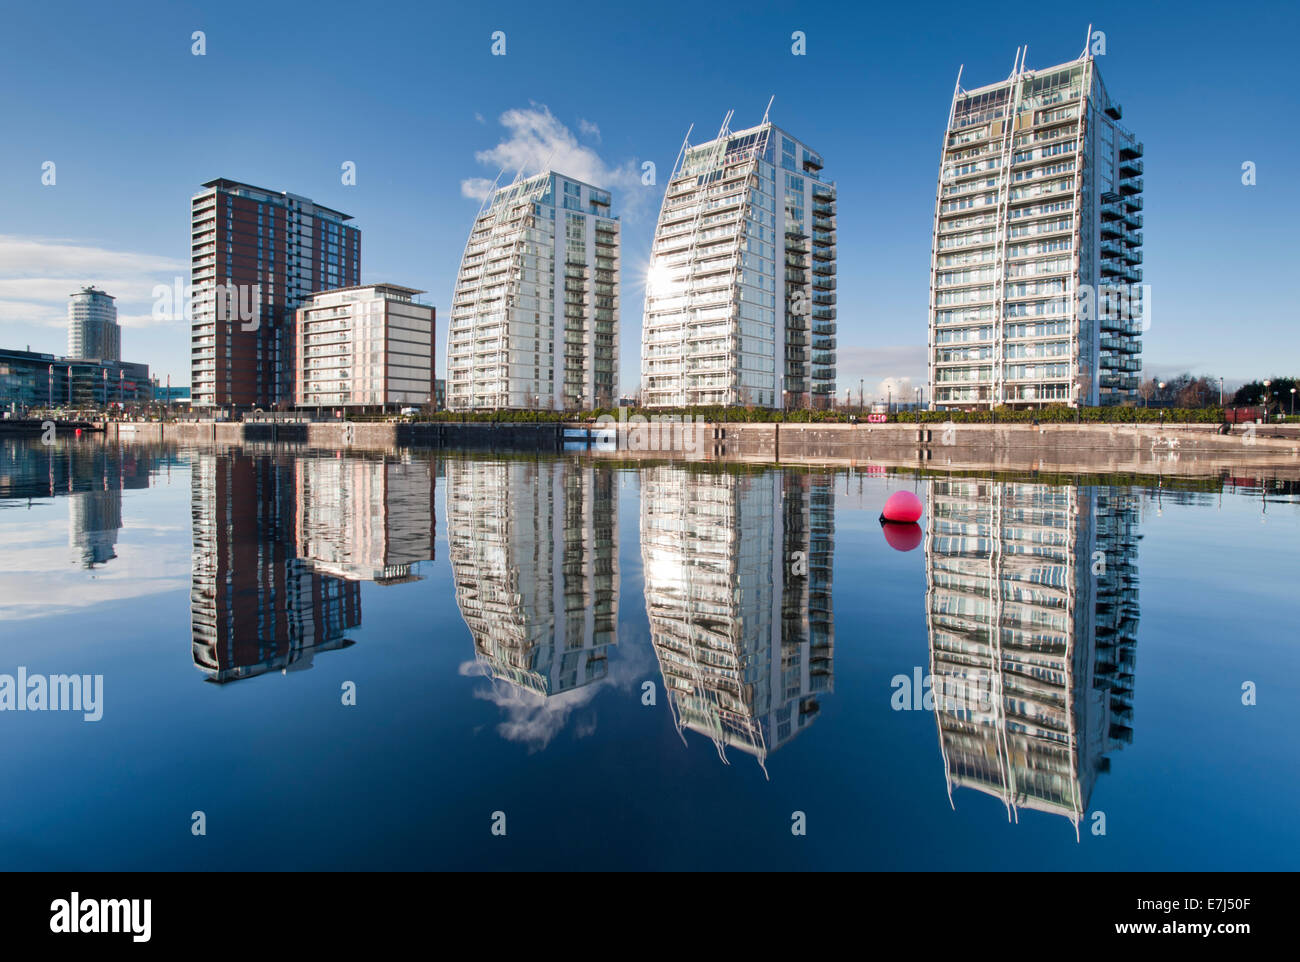 Les Appartements Vue sur NV Huron Basin, Salford, Greater Manchester Photo Stock